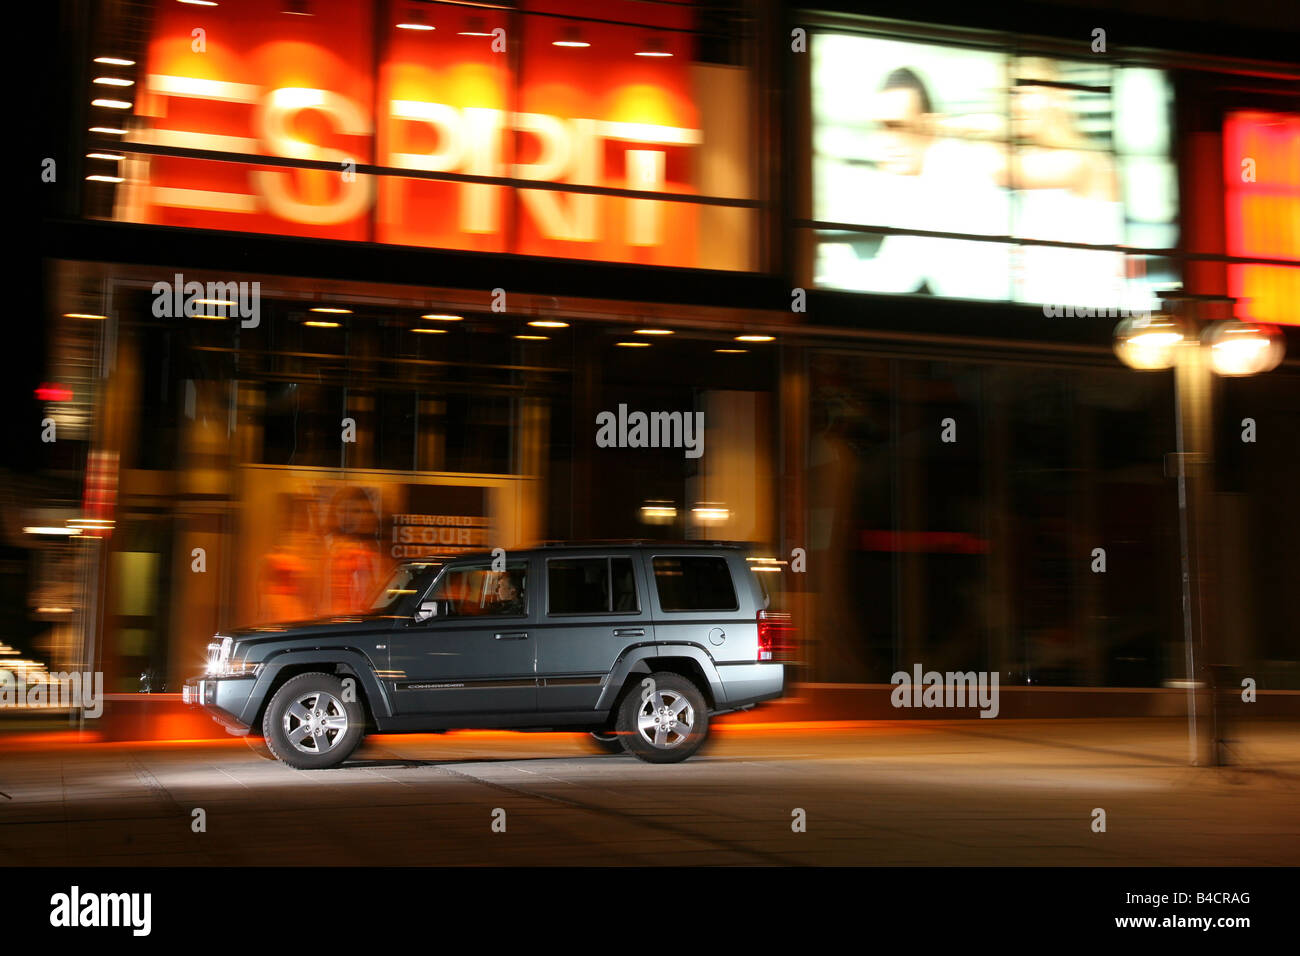 Jeep Commander 3.0 CRD, model year 2006-, silver, driving, side view, City, night shot, Evening - Stock Image